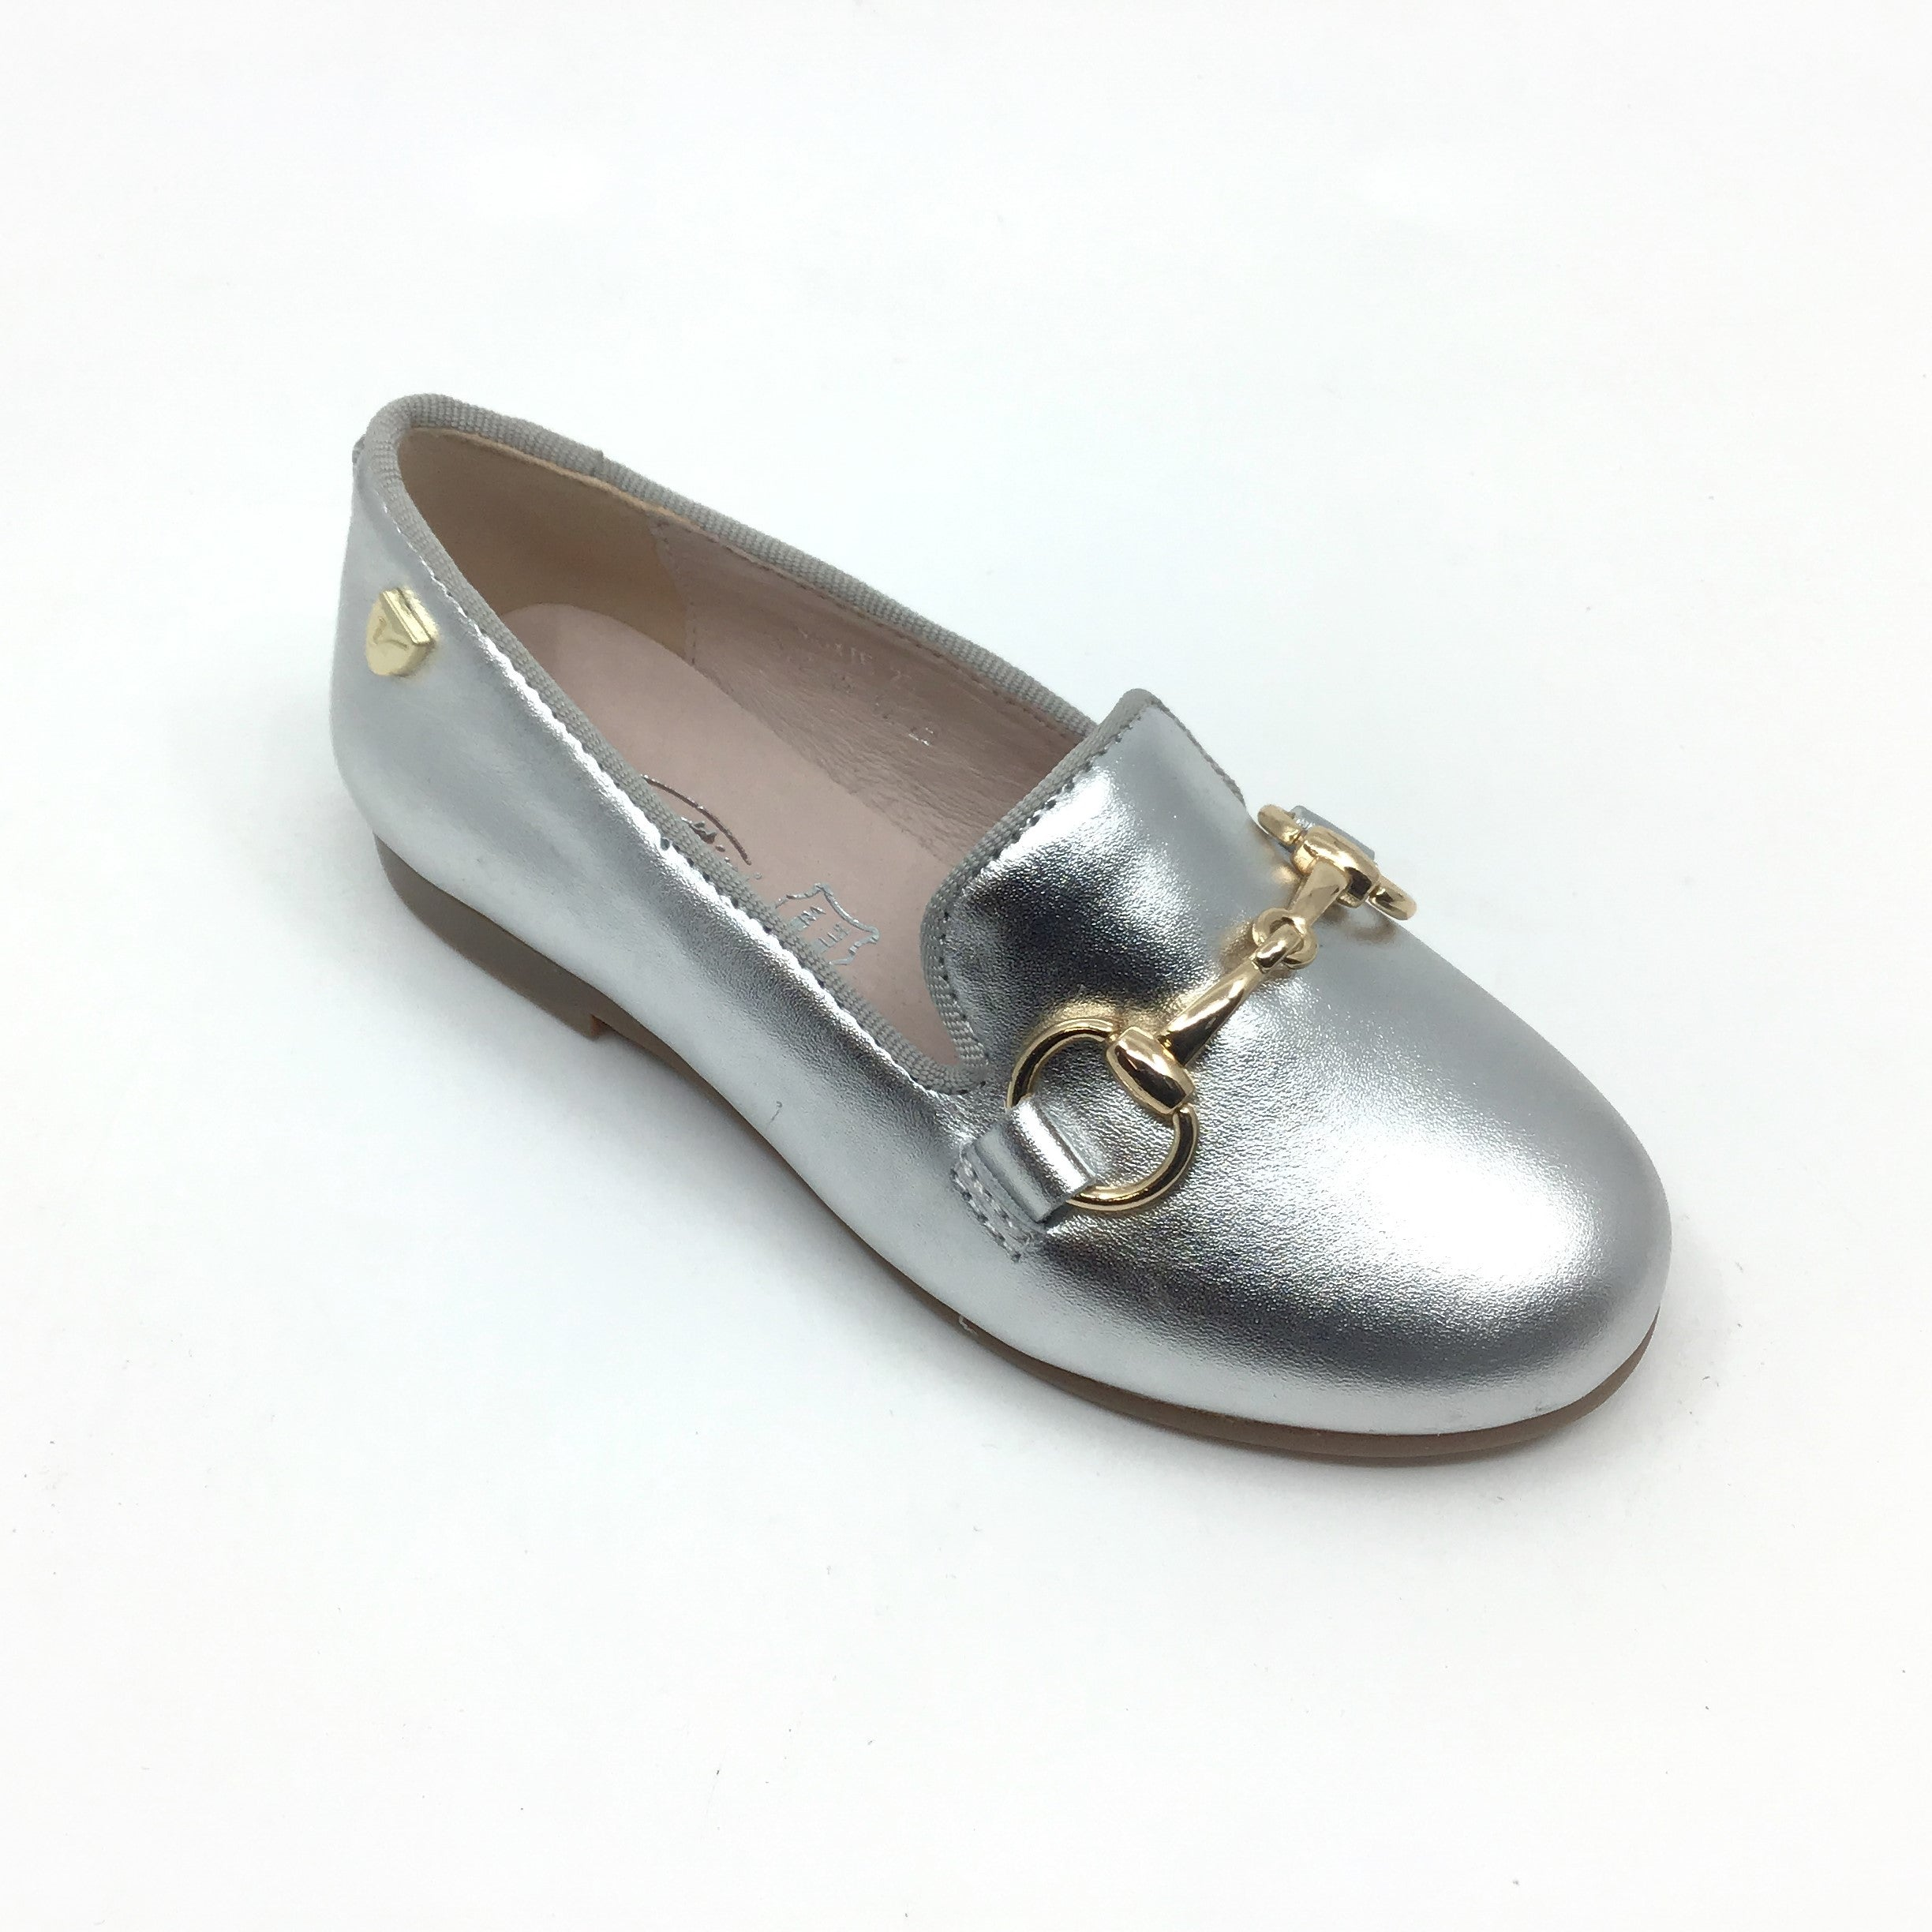 Venettini Silver Loafer with Chain